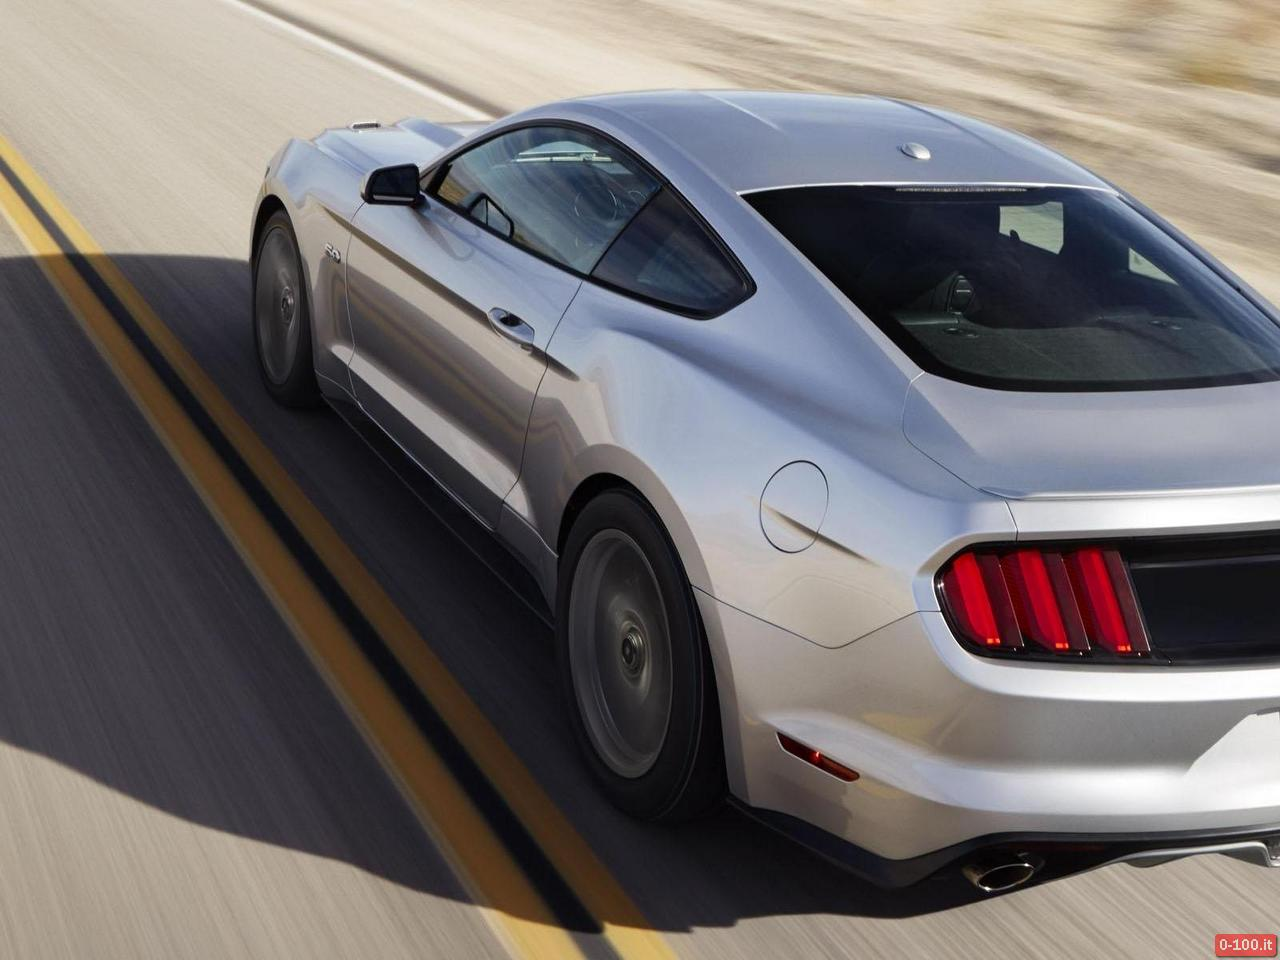 ford-mustang-2300-ecoboost-v8-5000-2014-0-100_20